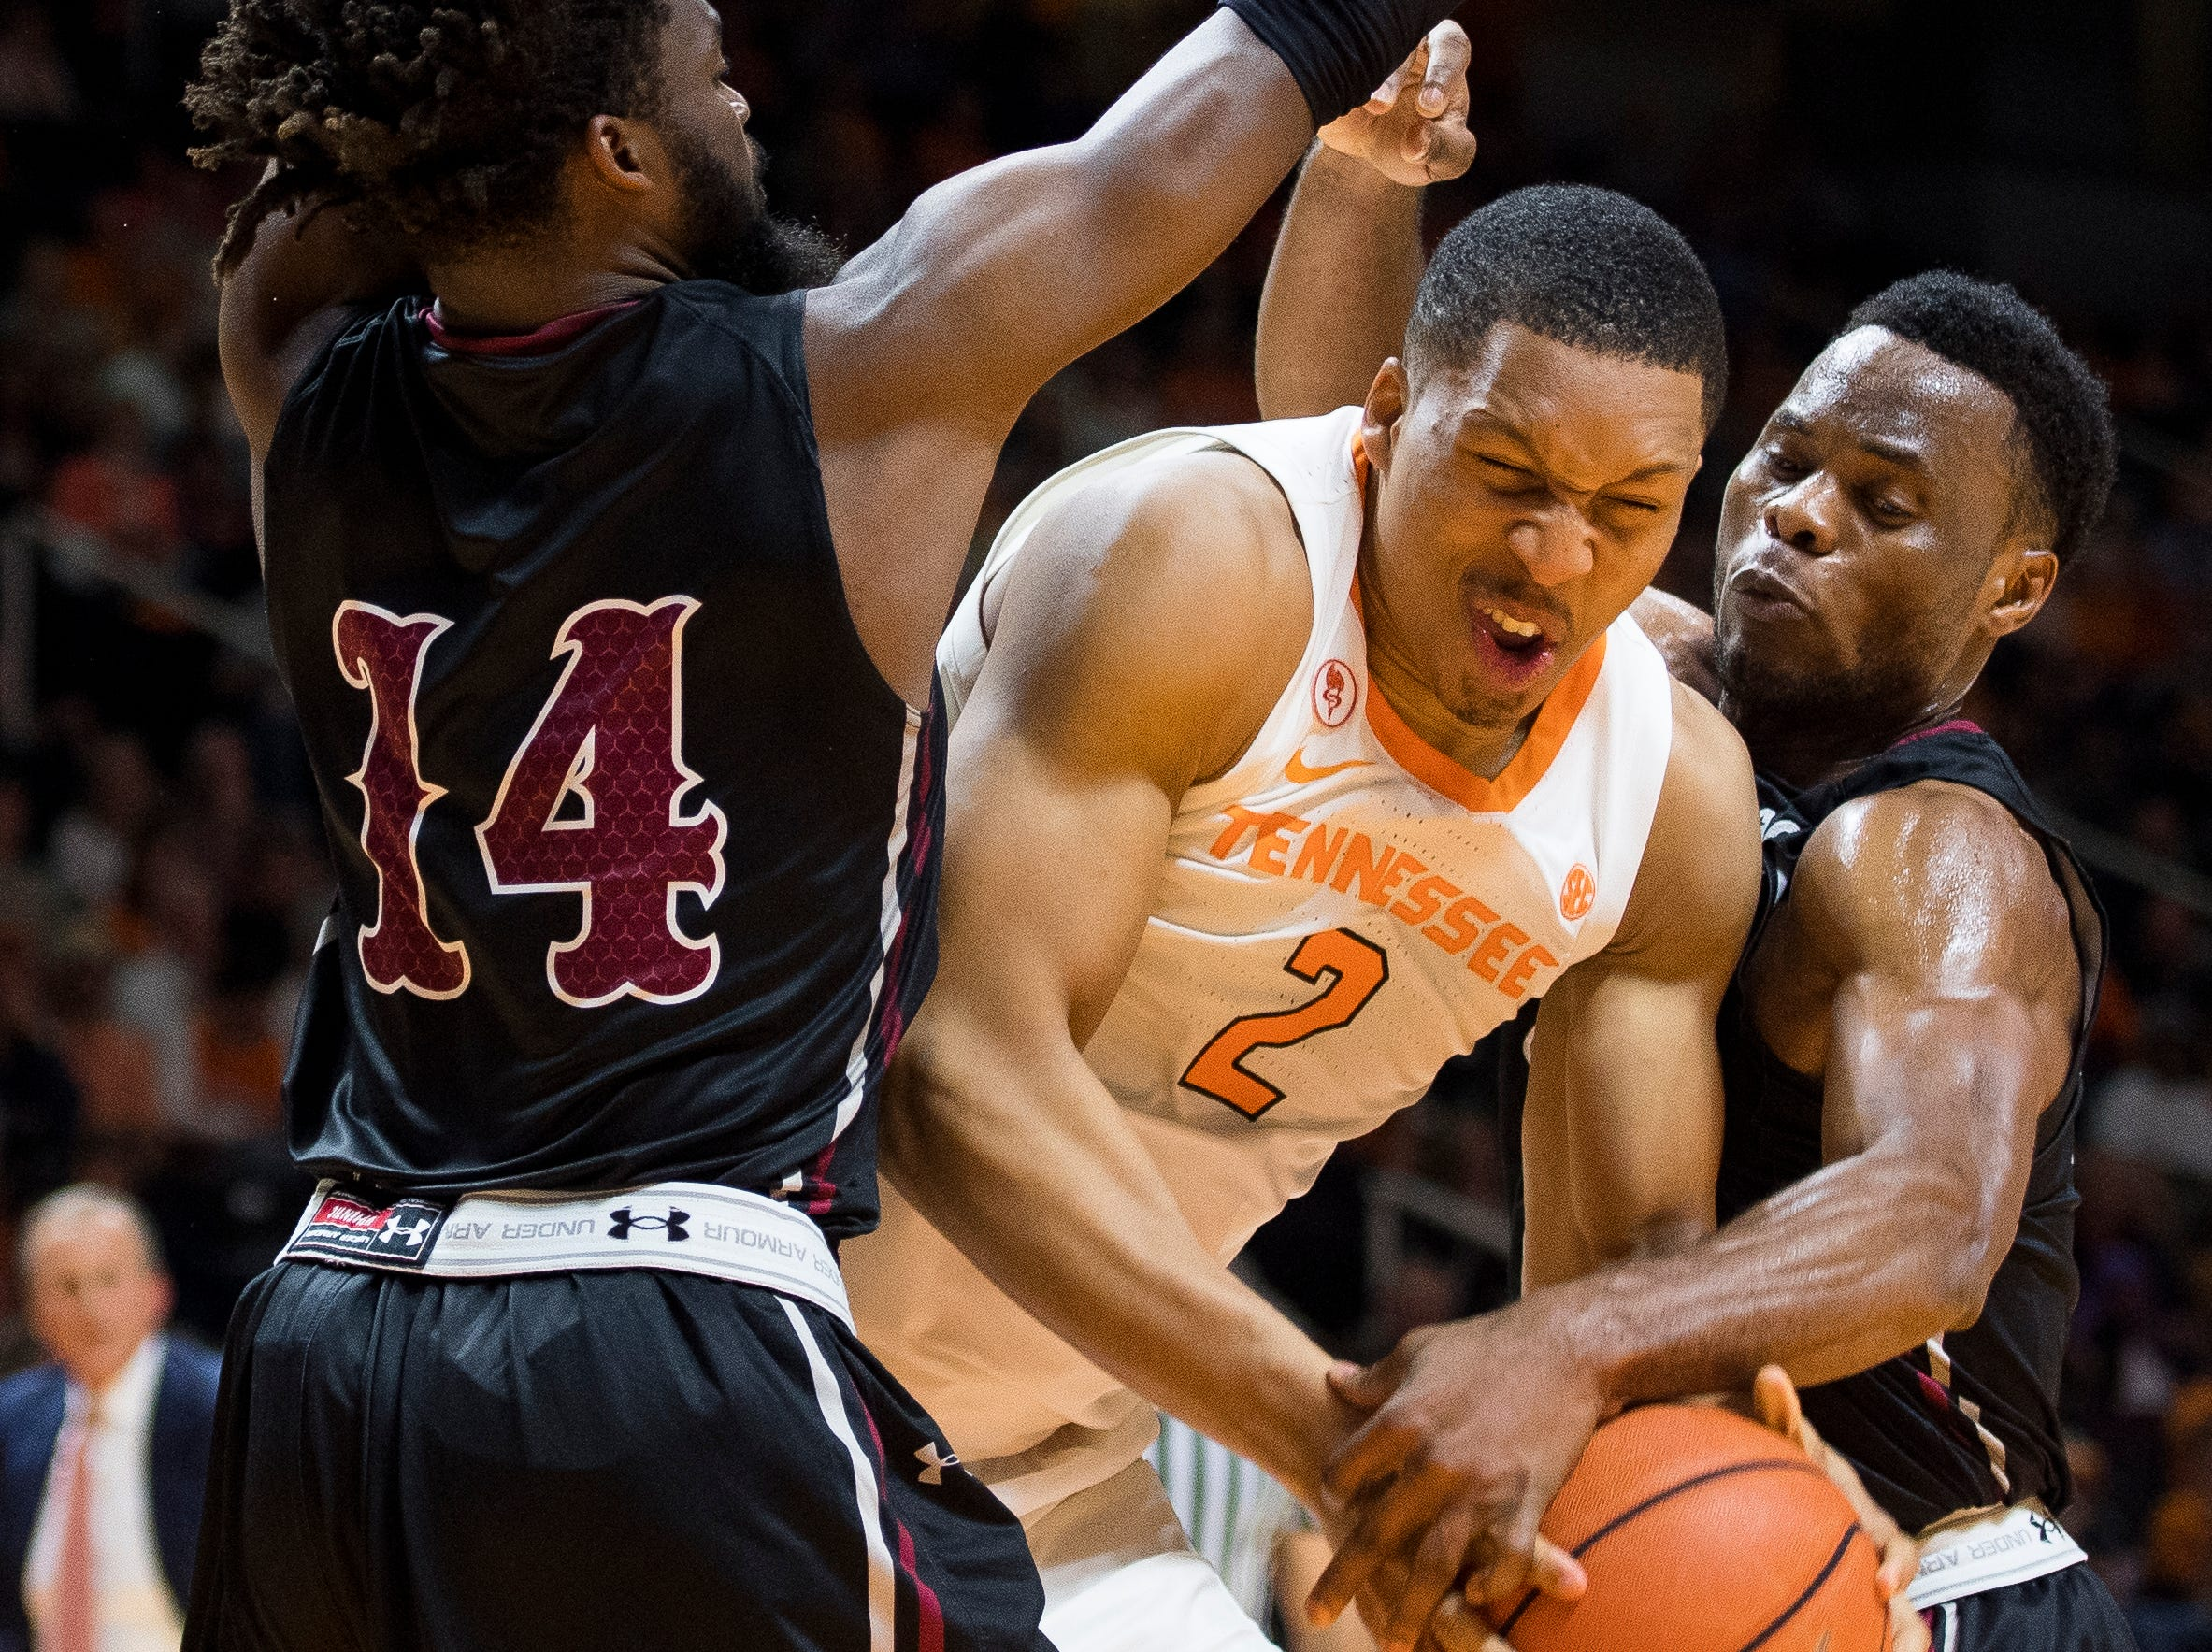 Tennessee forward Grant Williams (2) squeezes in between Lenoir-Rhyne guard Cory Thomas (14) and Lenoir-Rhyne guard Djibril Diallo (13) during Tennessee's basketball game against Lenoir-Rhyne at Thompson-Boling Arena in Knoxville on Tuesday, November 6, 2018.